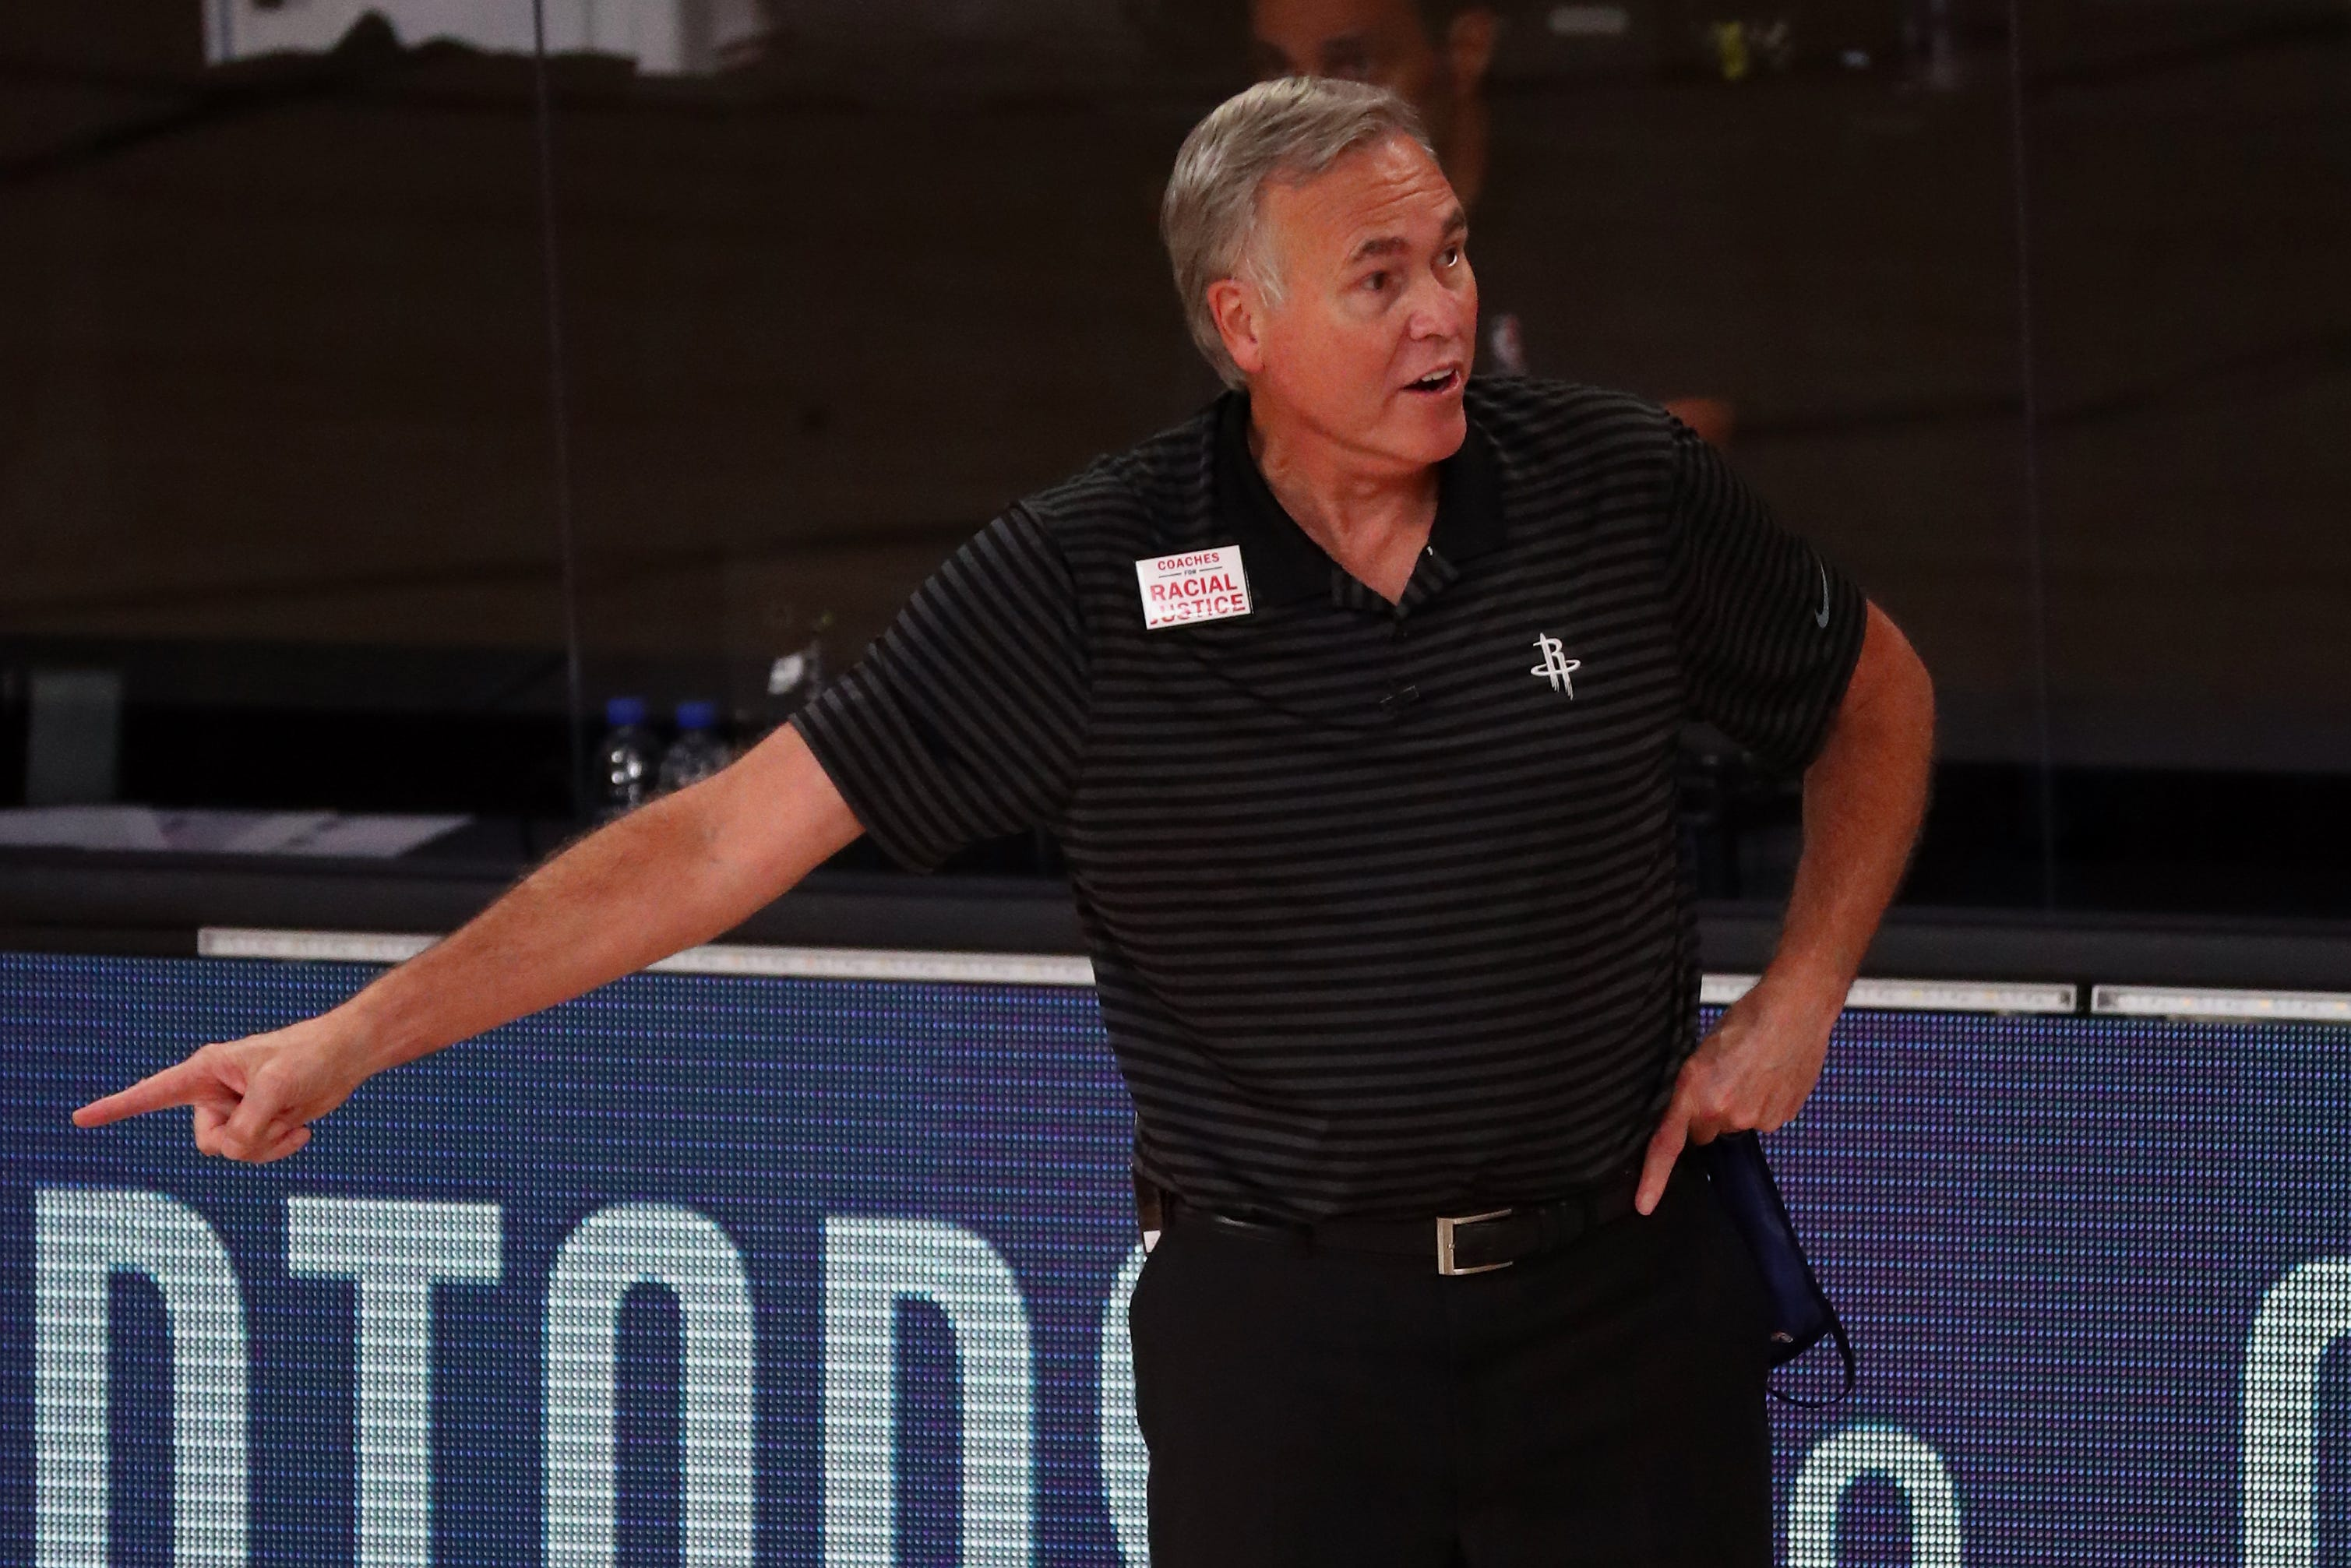 Mike D'Antoni to join Steve Nash's coaching staff with Brooklyn Nets